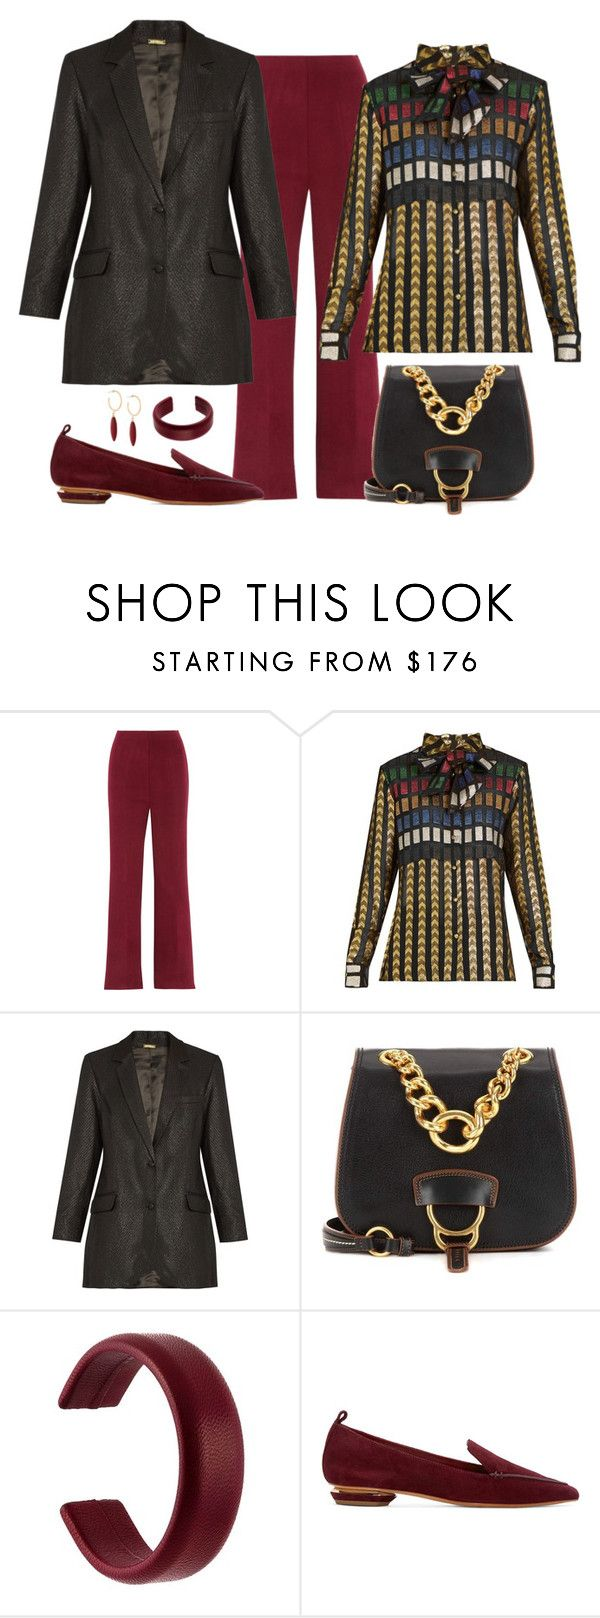 """""""Dodo Bar Necktie Blouse & Blazer Look"""" by romaboots-1 ❤ liked on Polyvore featuring Haider Ackermann, Miu Miu, Isabel Marant and Nicholas Kirkwood"""